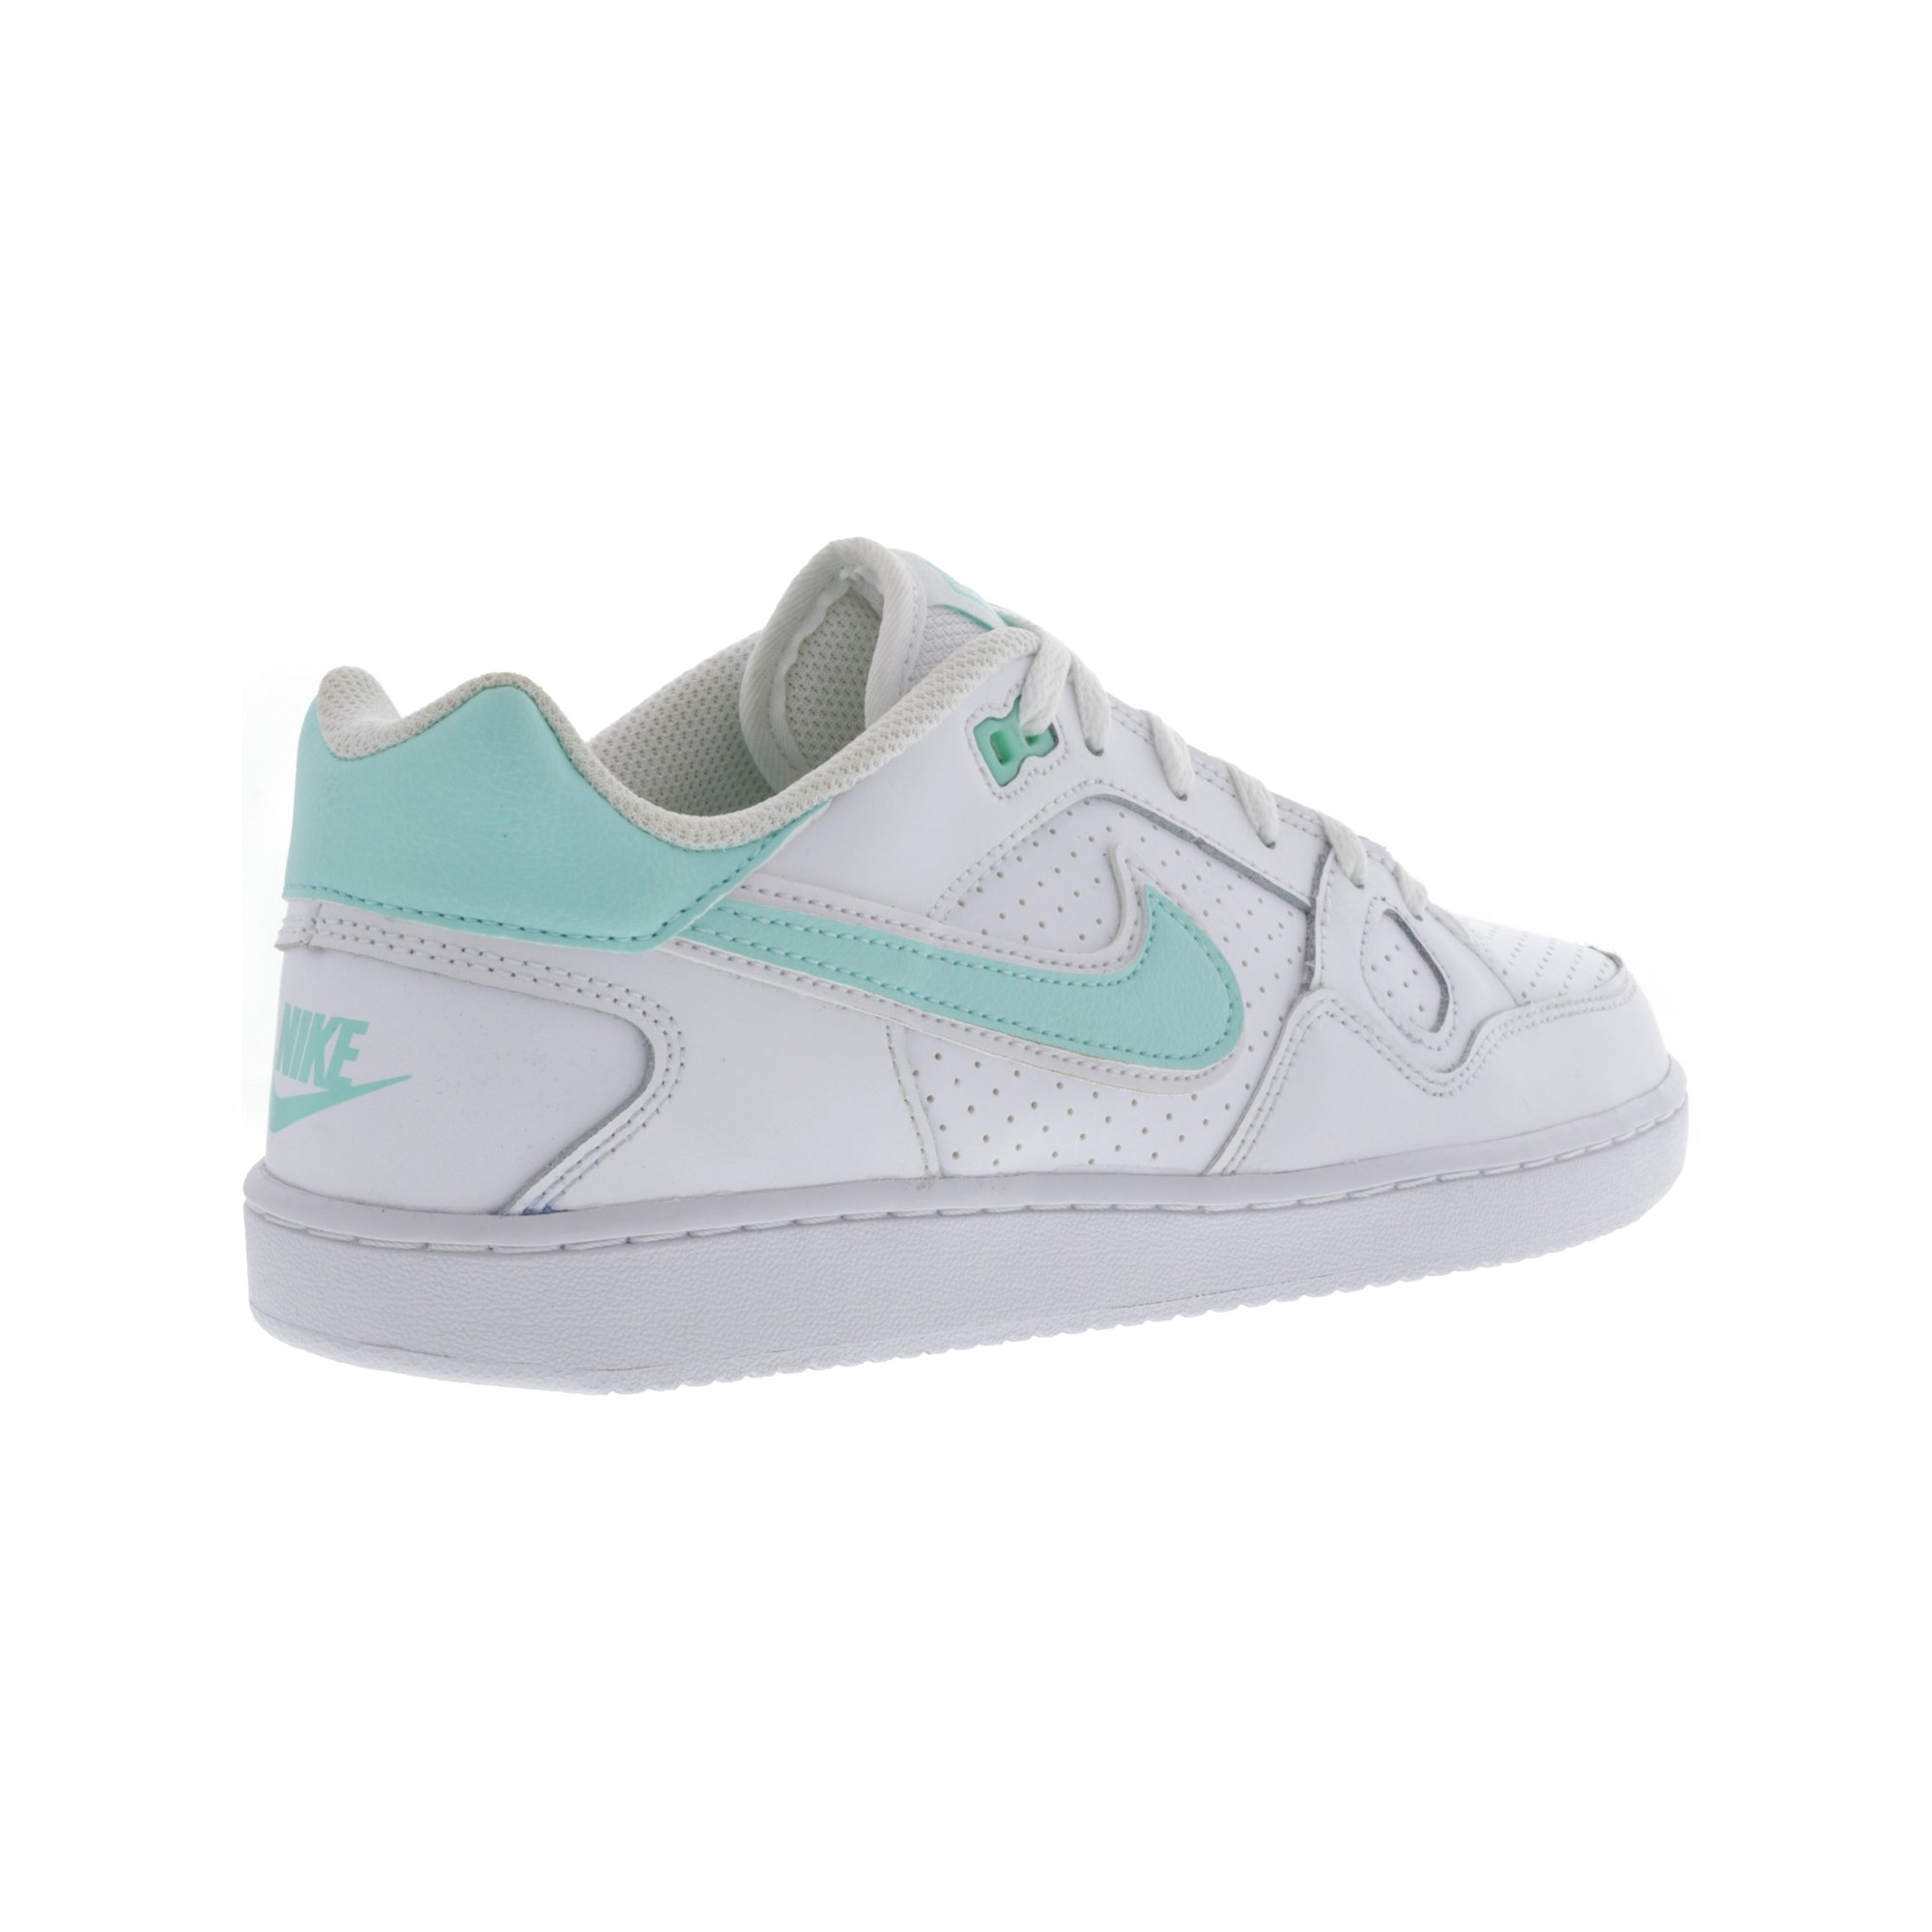 1bd1cd66a Nike Women s Son Of Force Black   White Ankle-High Leather Fashion Sneaker  - 7.5M